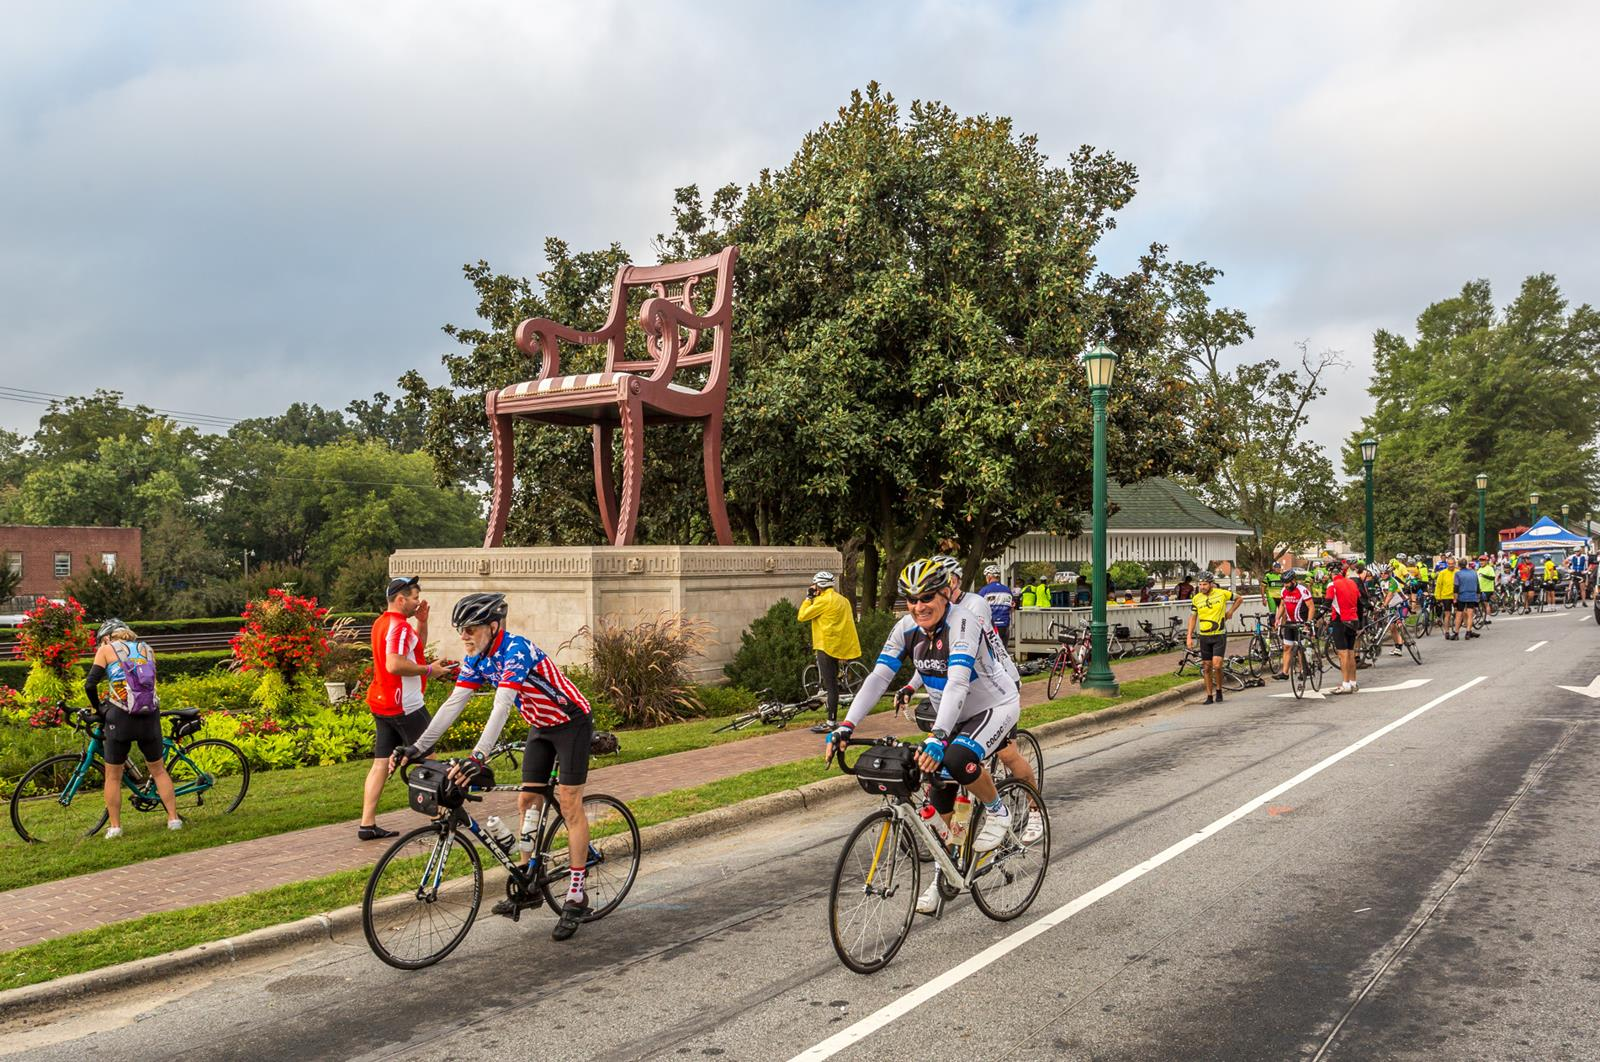 NCPN Downtown Thomasville Chair with Cyclists